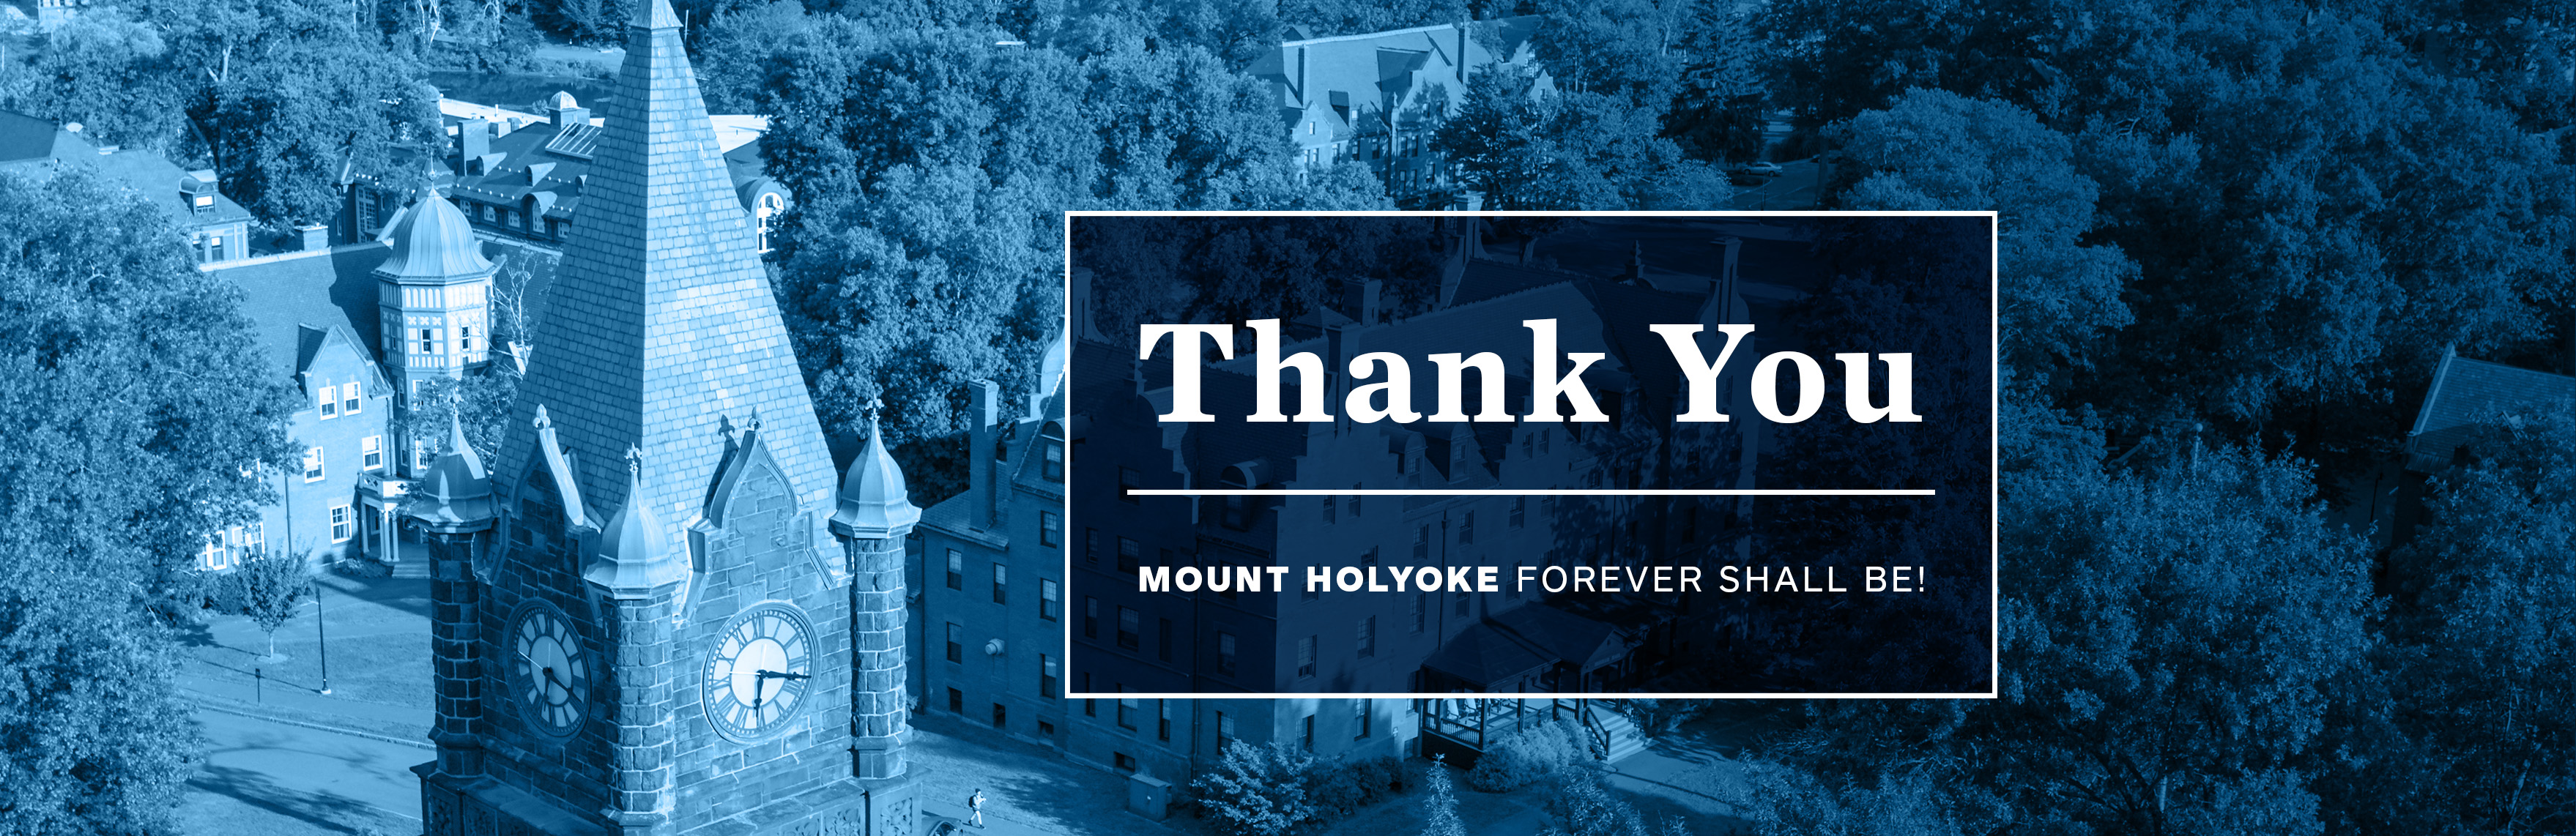 Thank you. Mount Holyoke forever shall be!